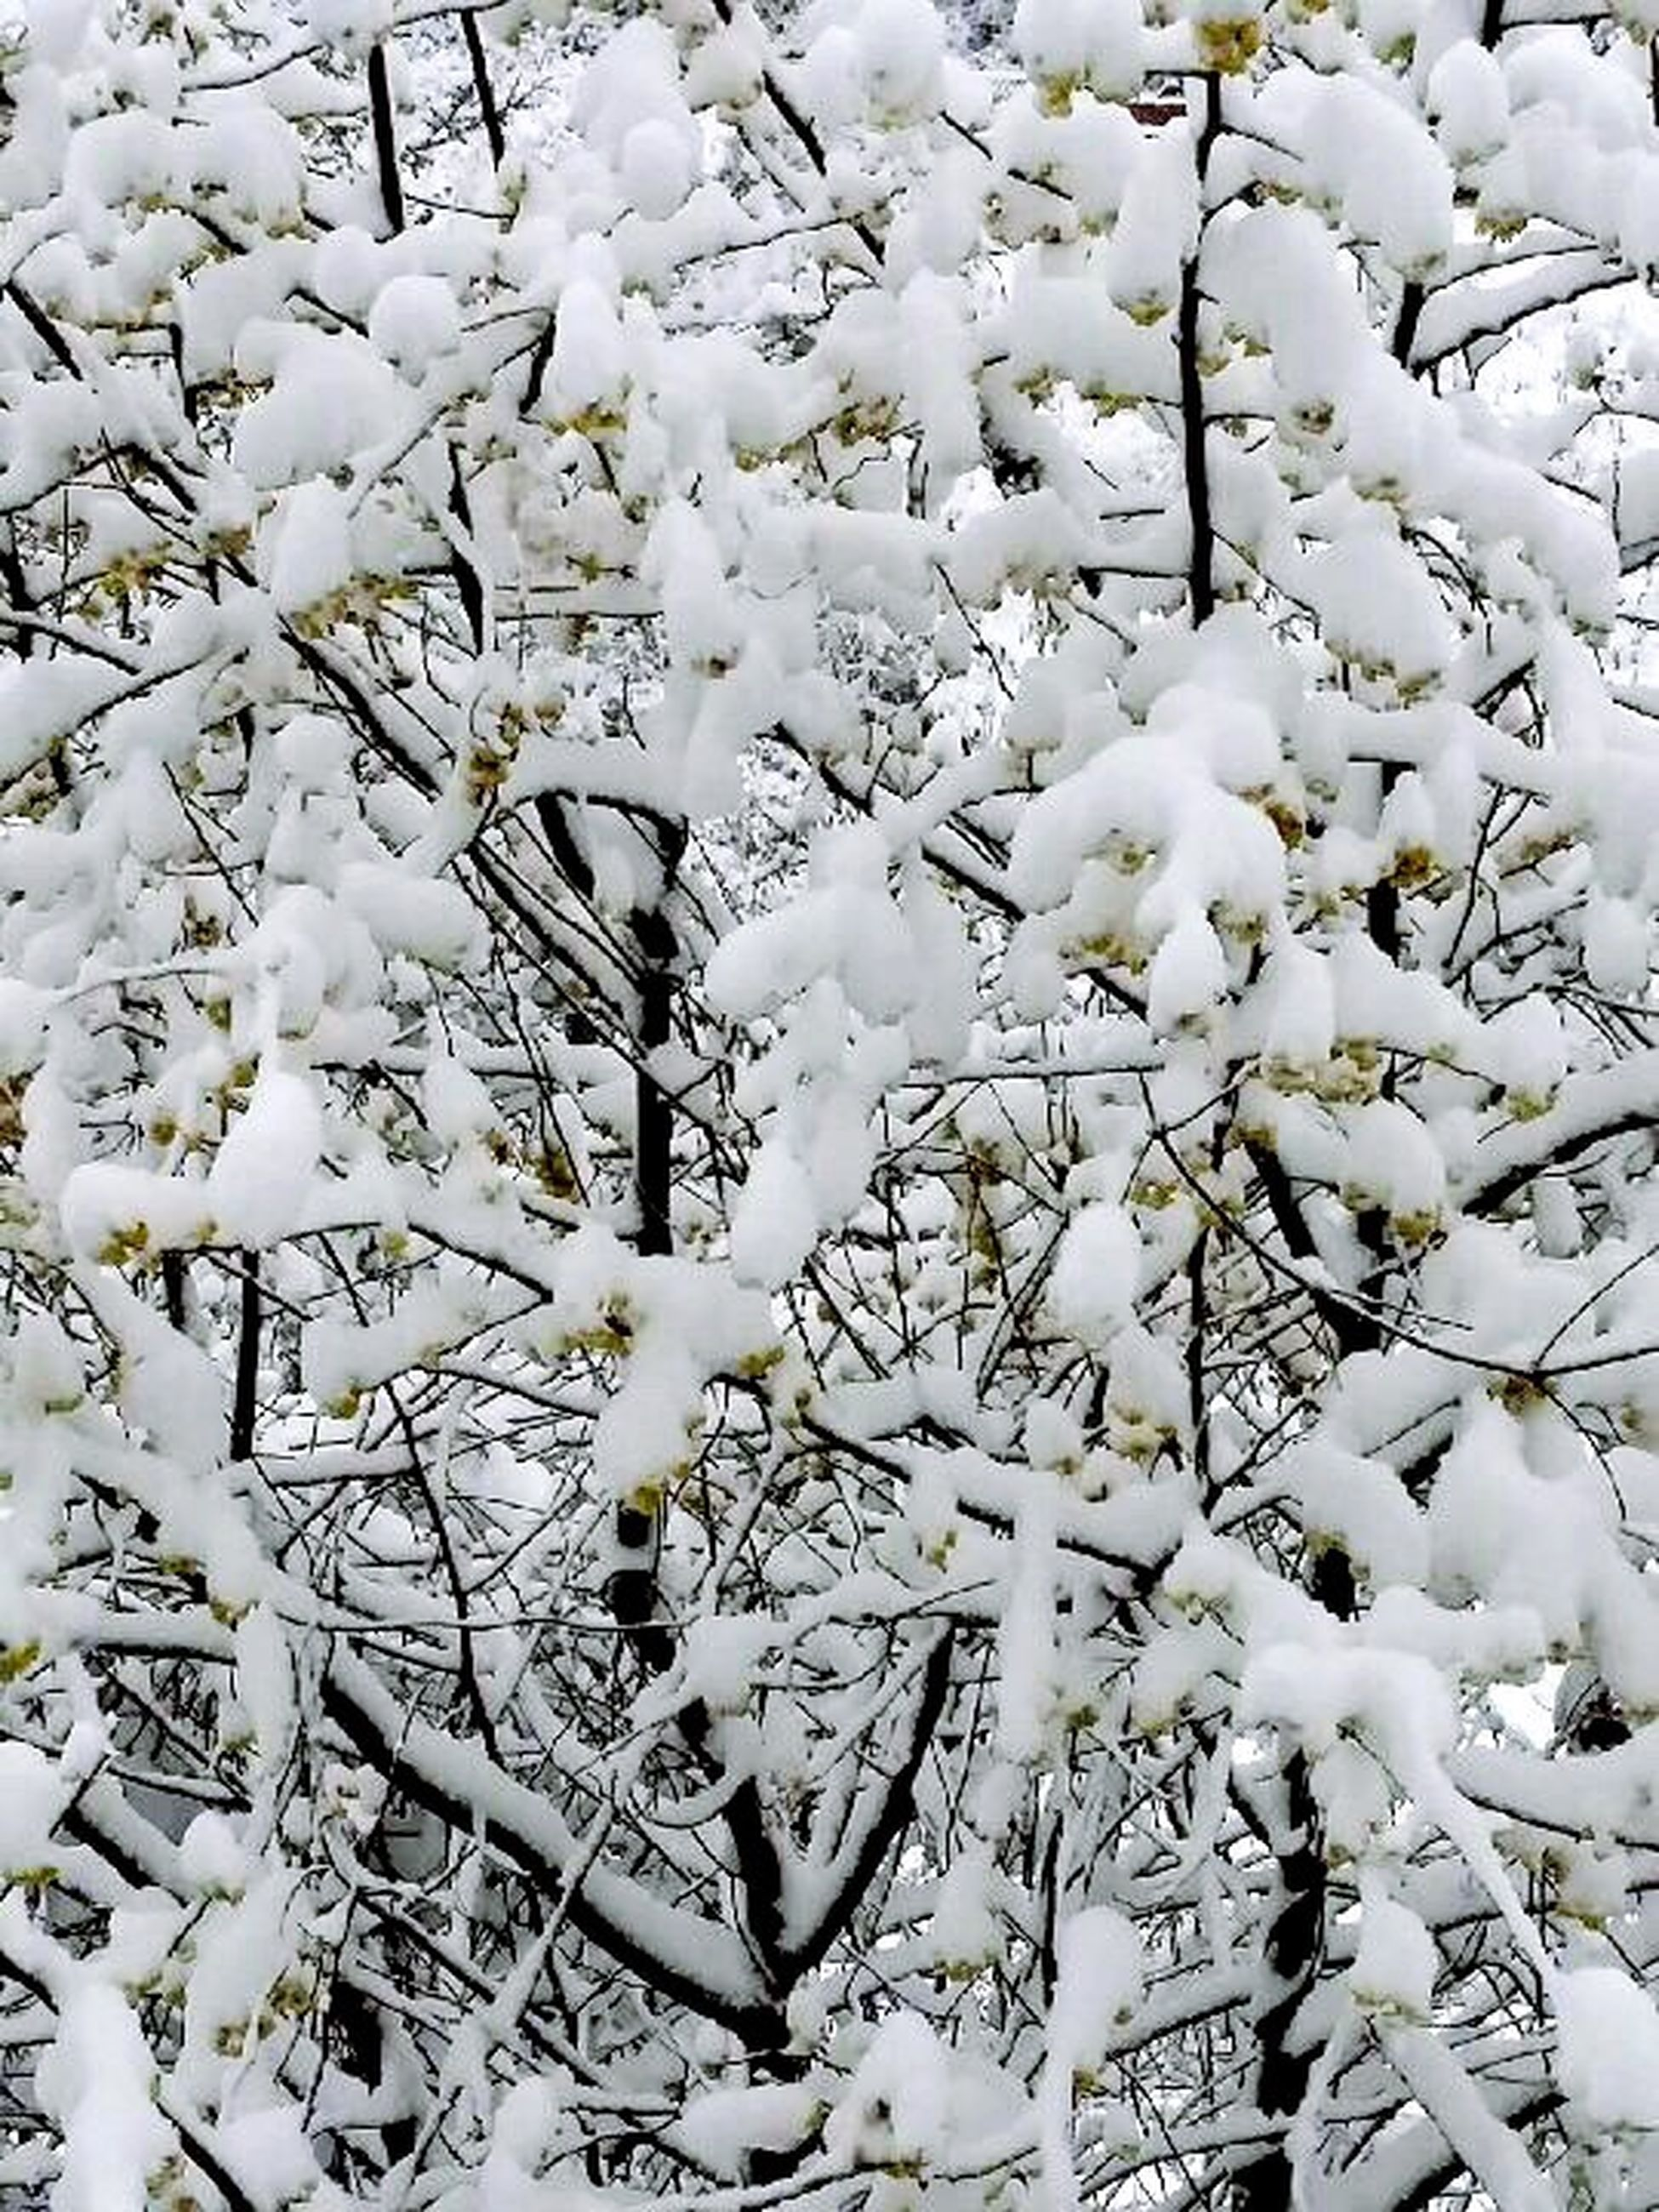 white color, season, snow, winter, high angle view, nature, cold temperature, white, flower, growth, covering, branch, beauty in nature, day, weather, fragility, tree, no people, outdoors, plant